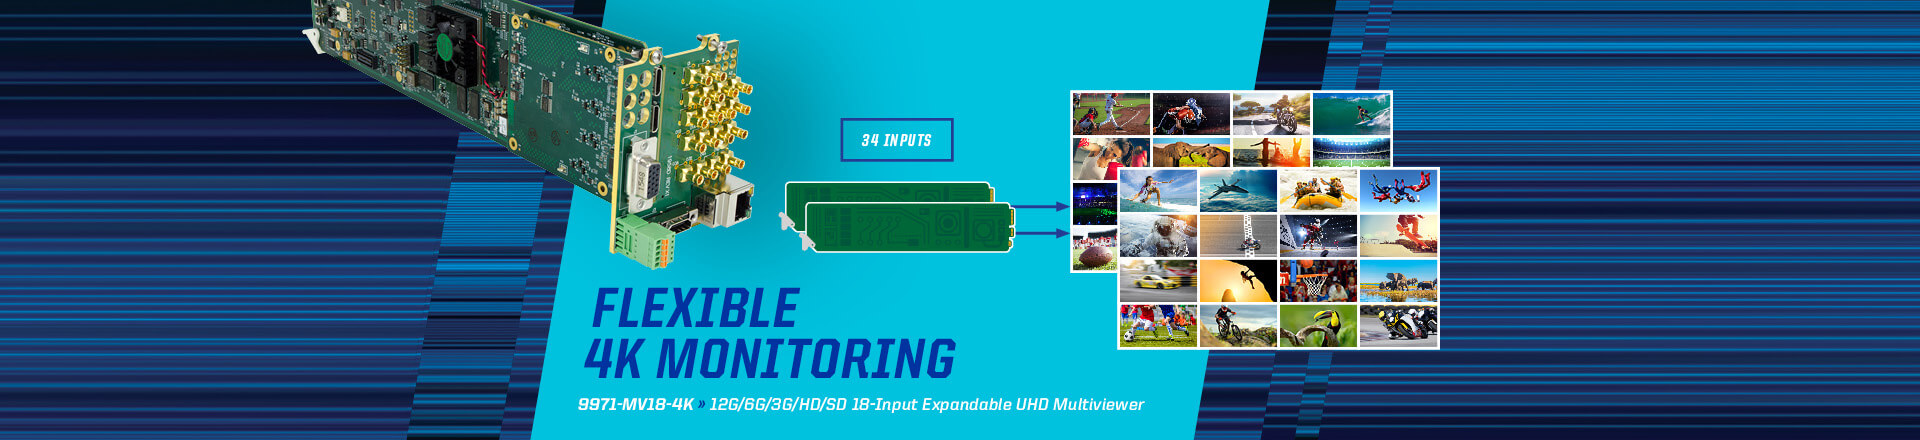 Flexible 4K Monitoring